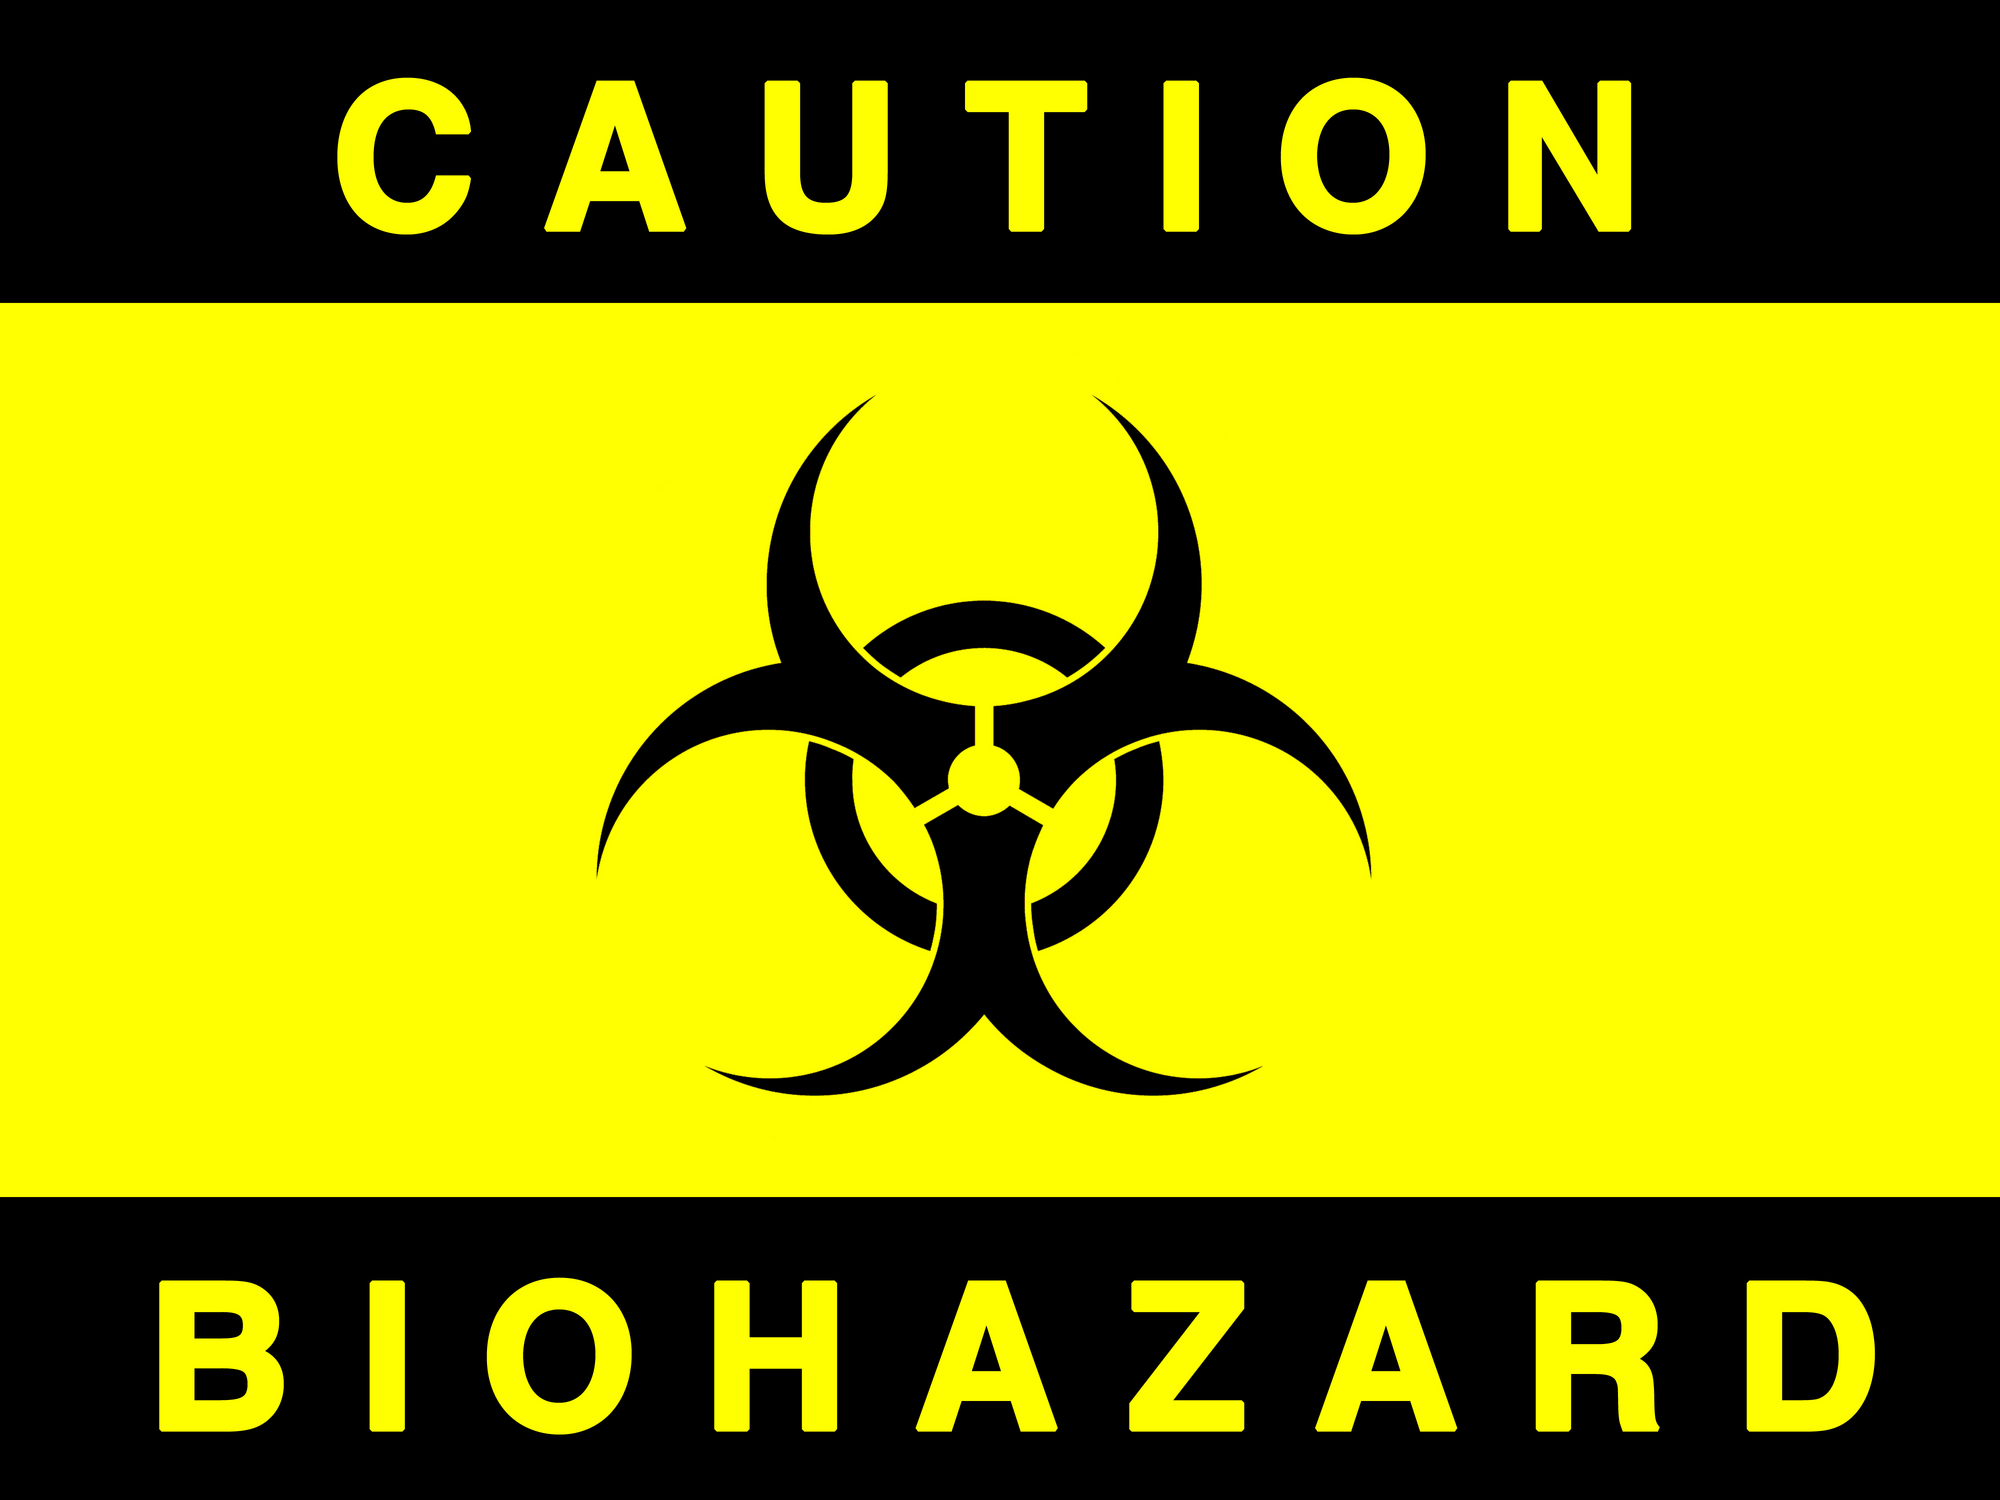 Biohazard black yellow